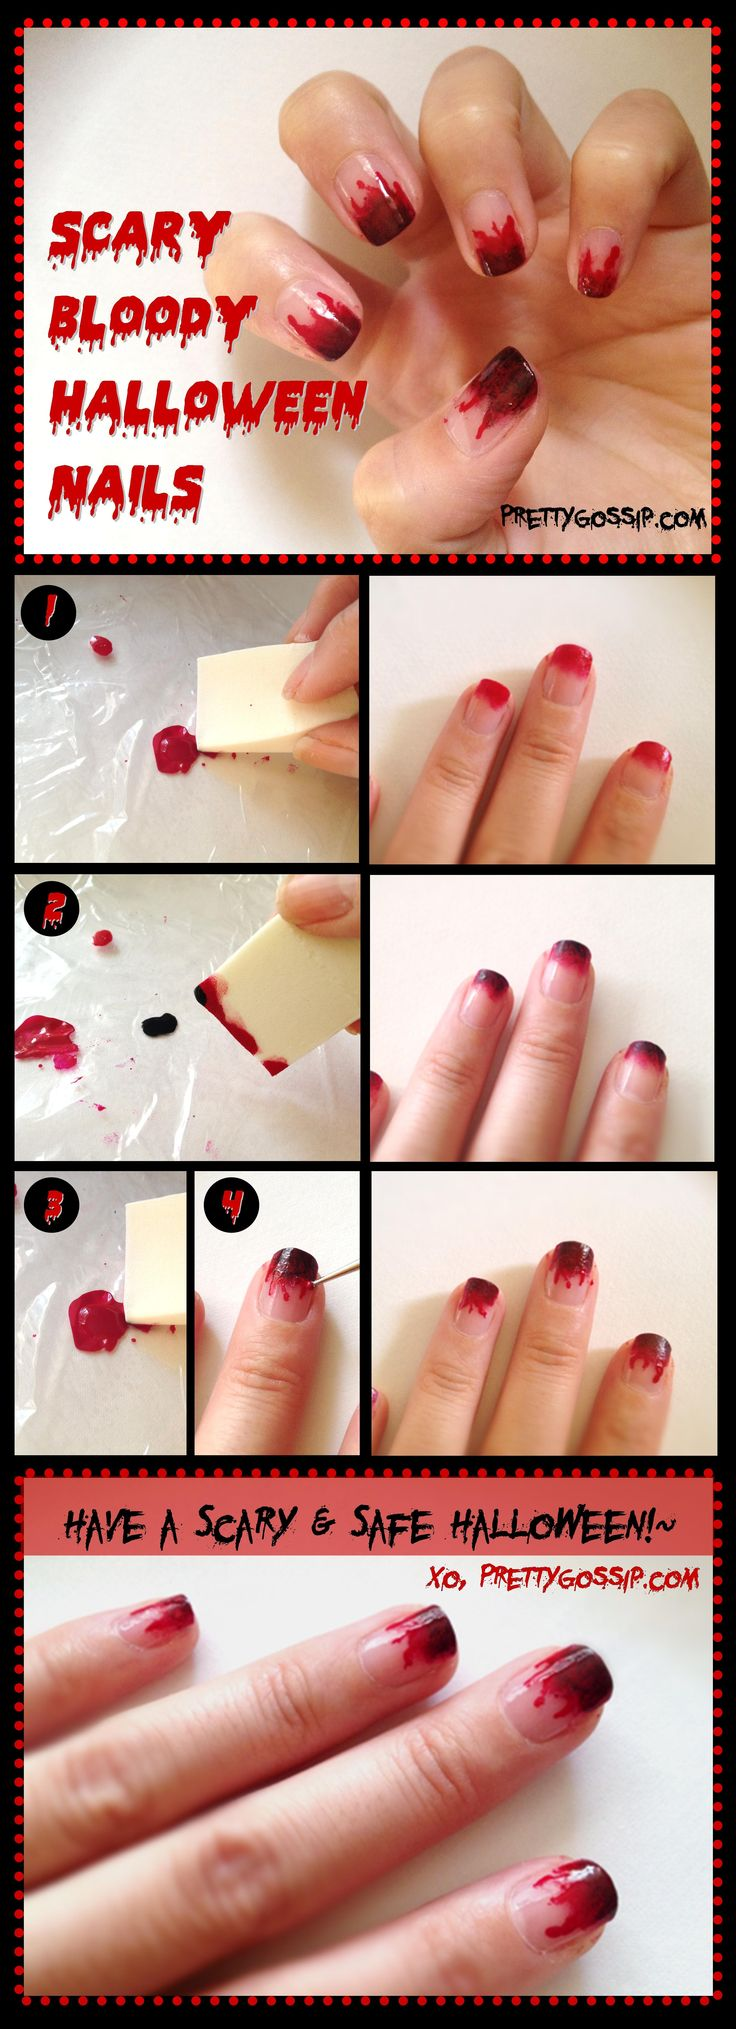 PrettyGossip- Bloody Scary Halloween Nail Tutorial